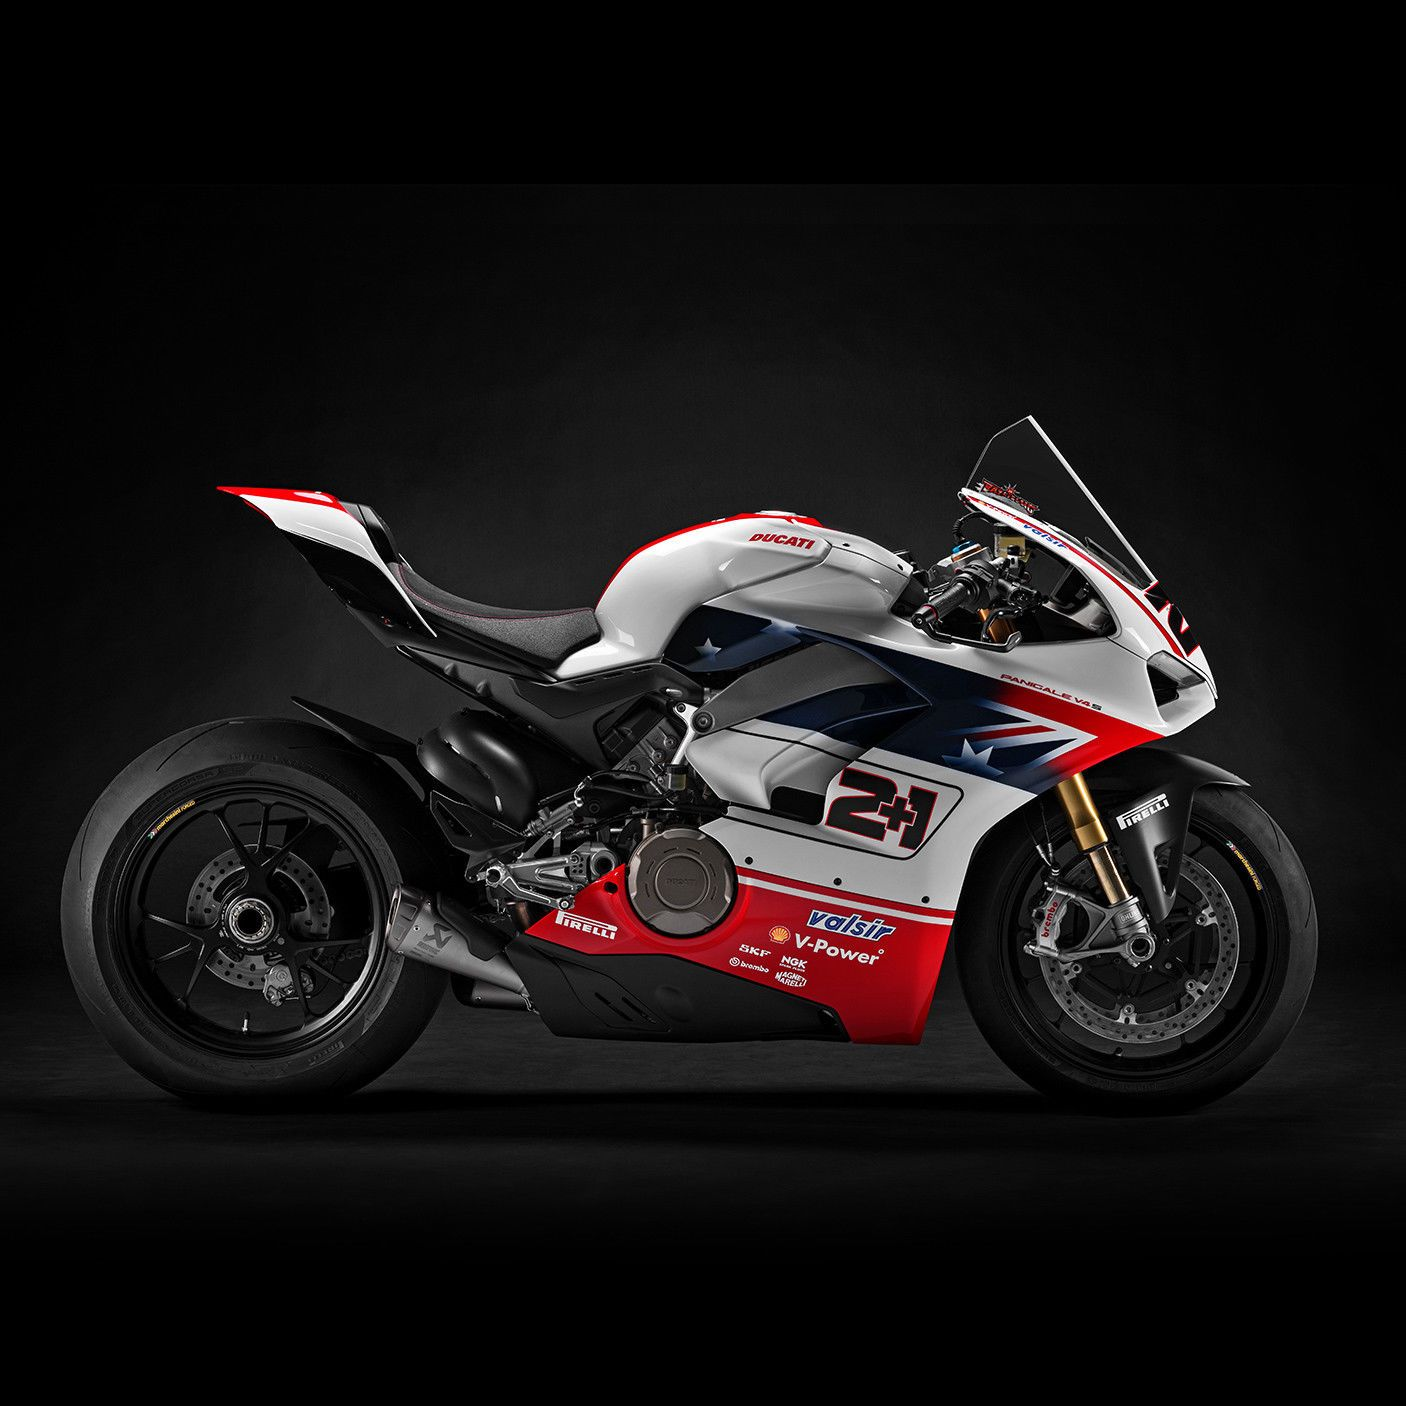 Wdw Ducati Panigale V4 S Bikes Are Reeking Huge Numbers At The